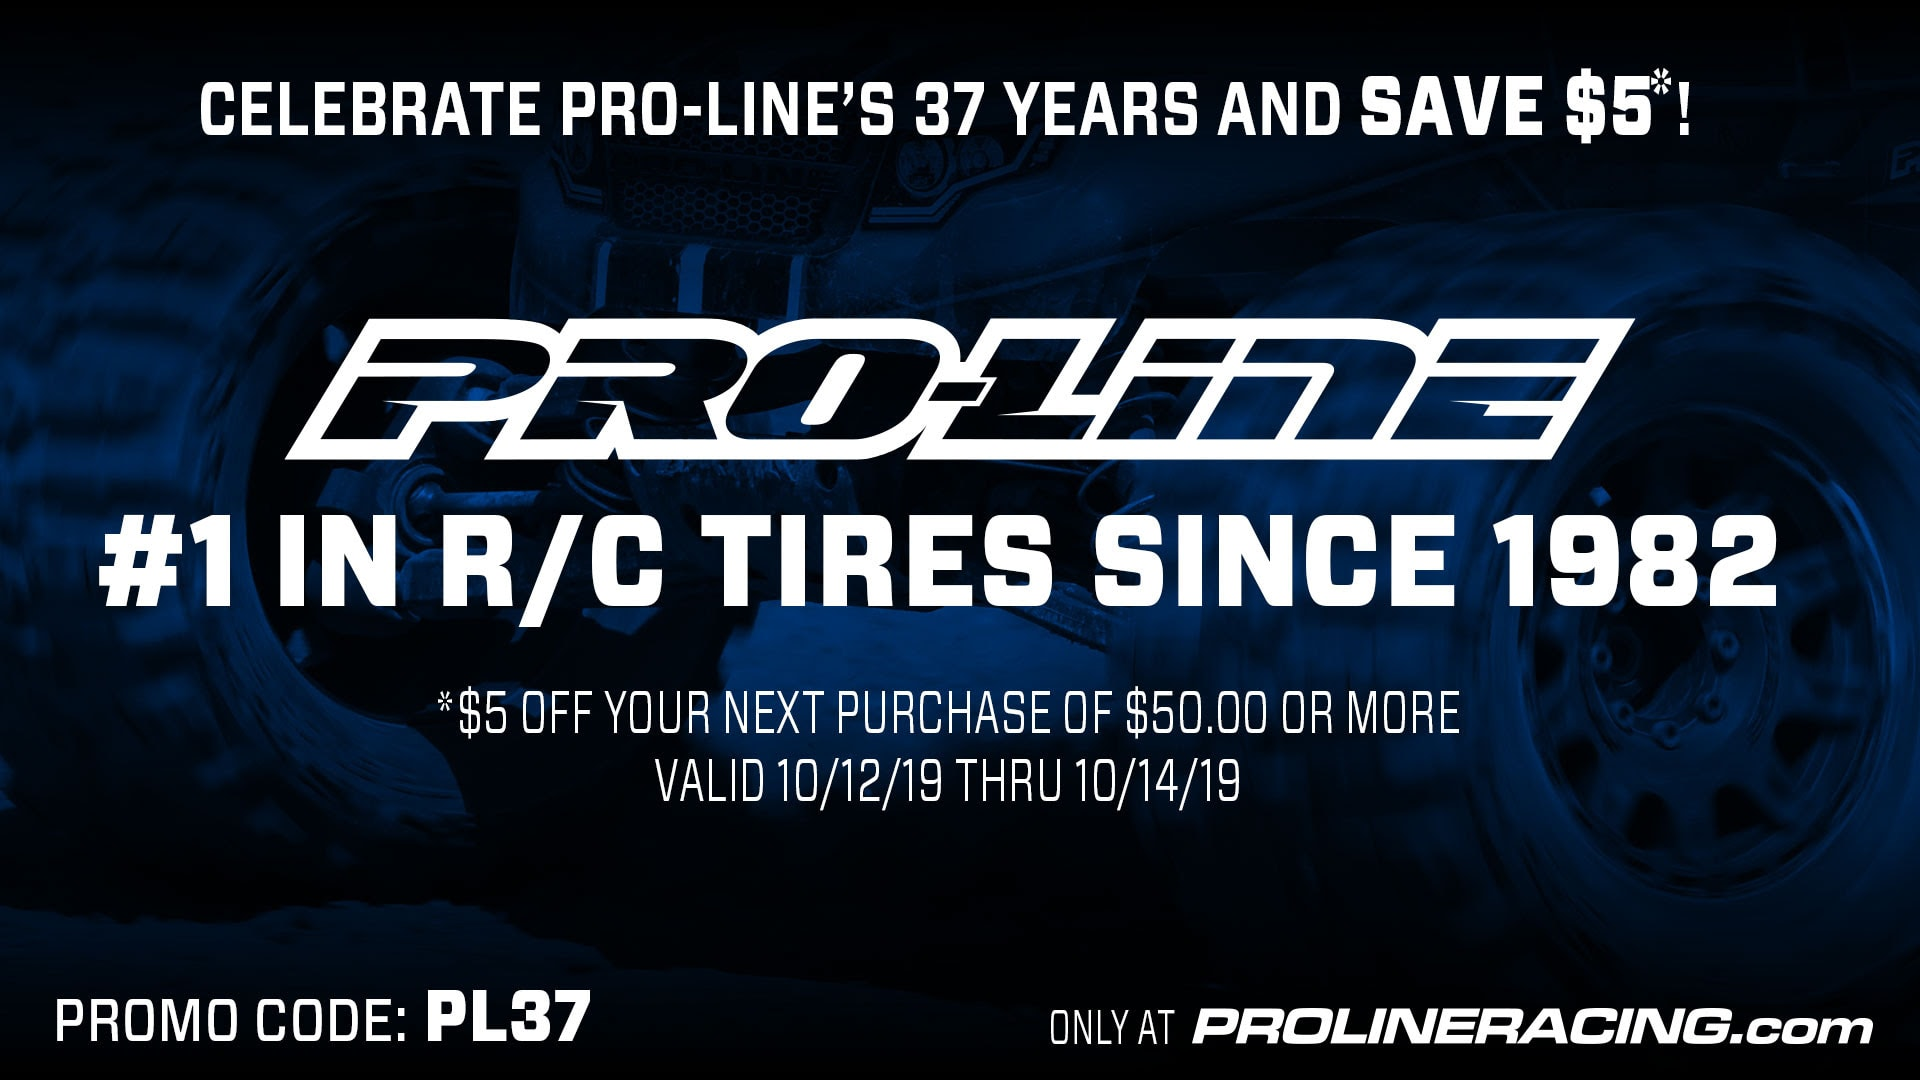 Celebrate 37 Years of Pro-Line!